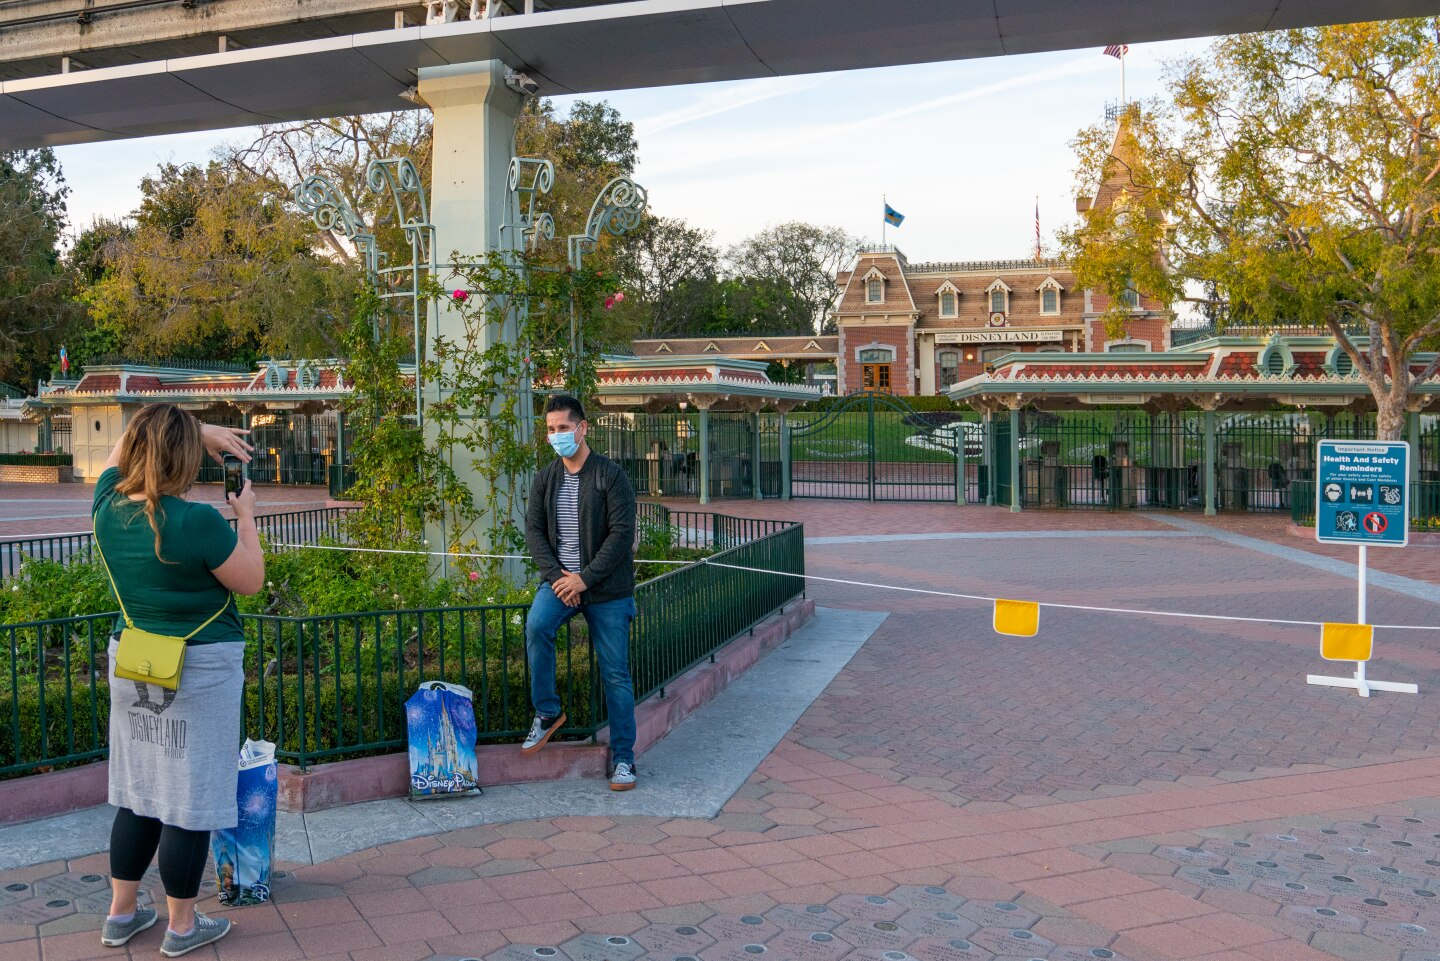 A woman takes a picture of a man outside of the closed Disneyland theme park entrance.